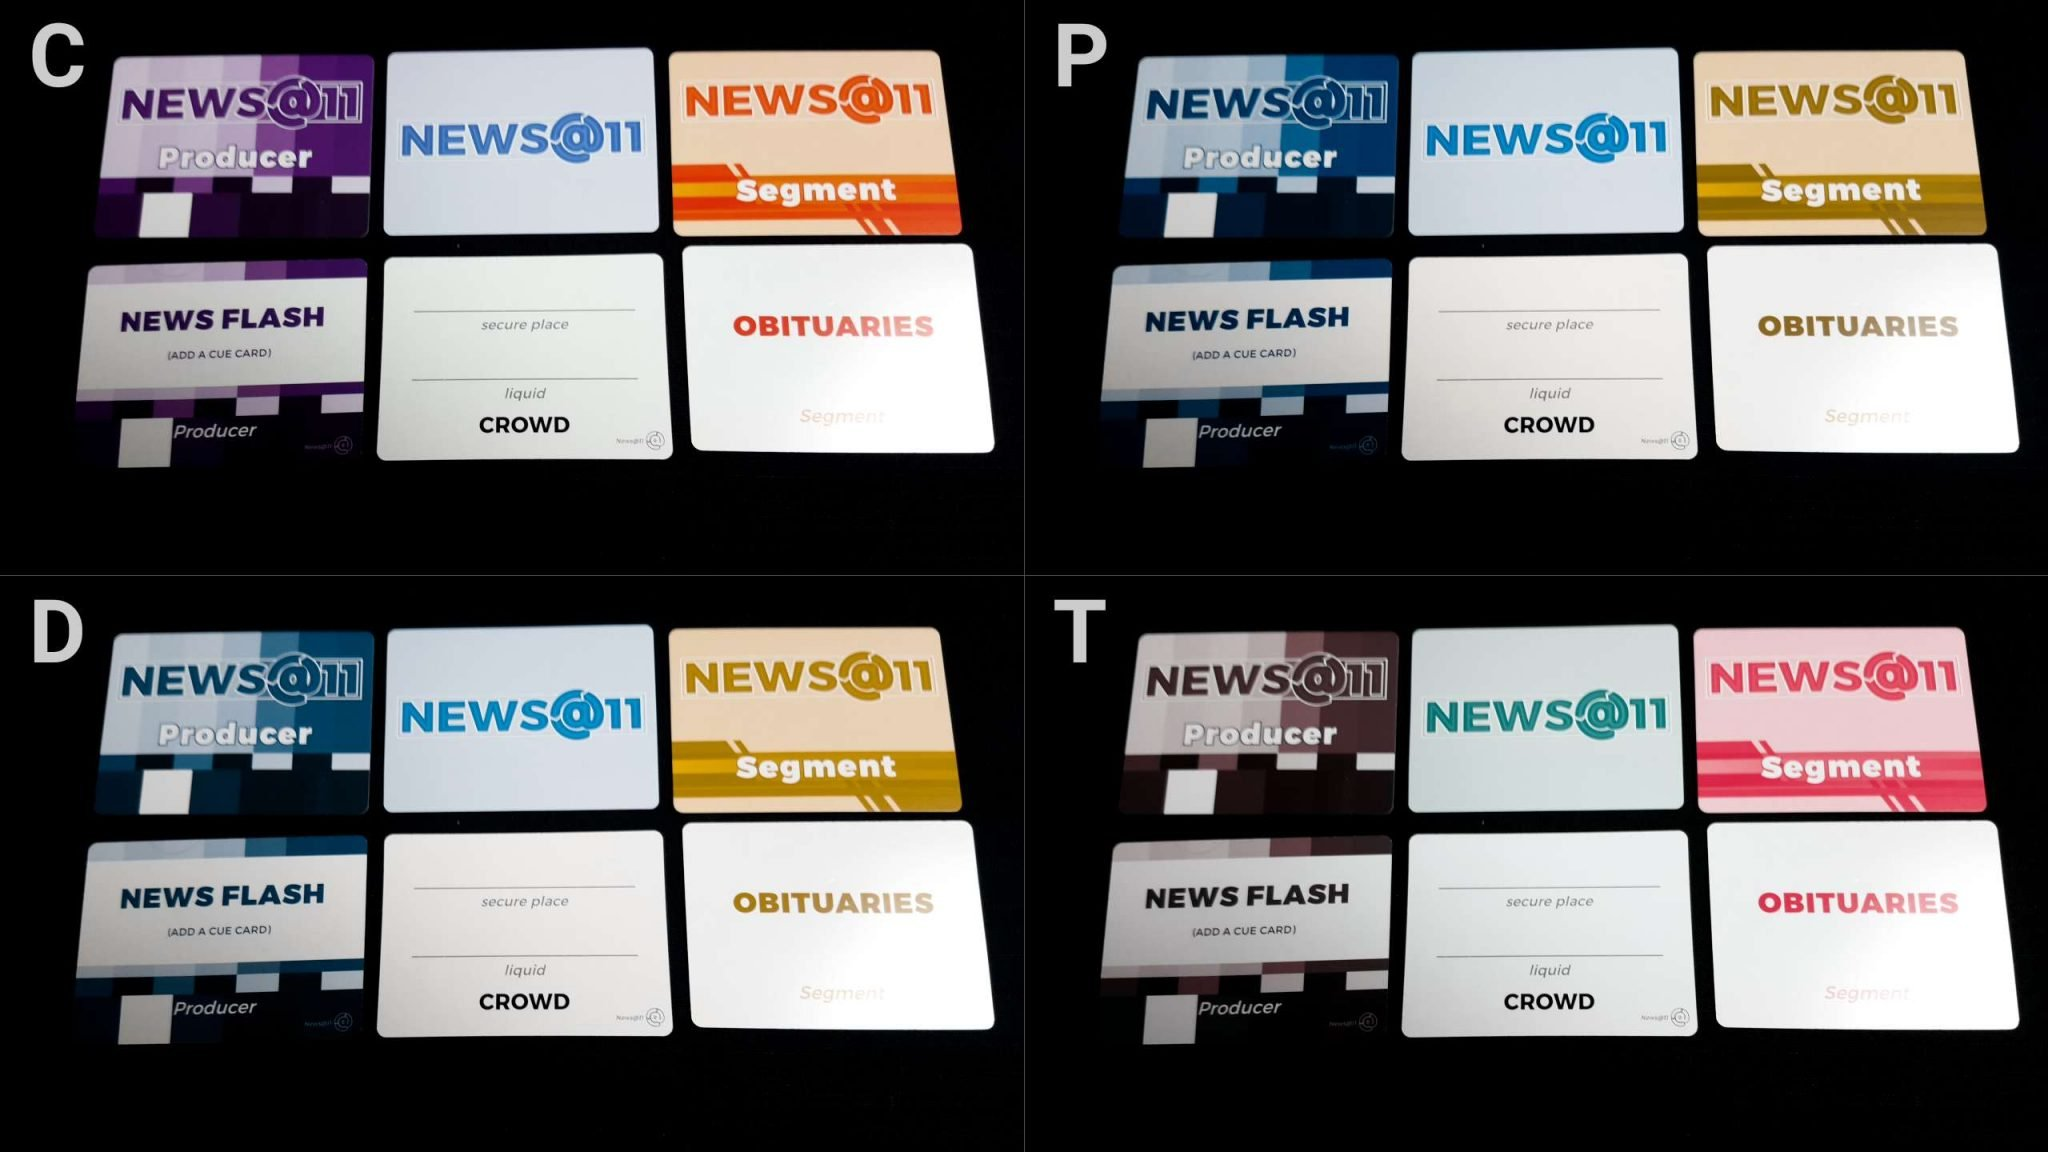 Colour Blindness in News @ 11